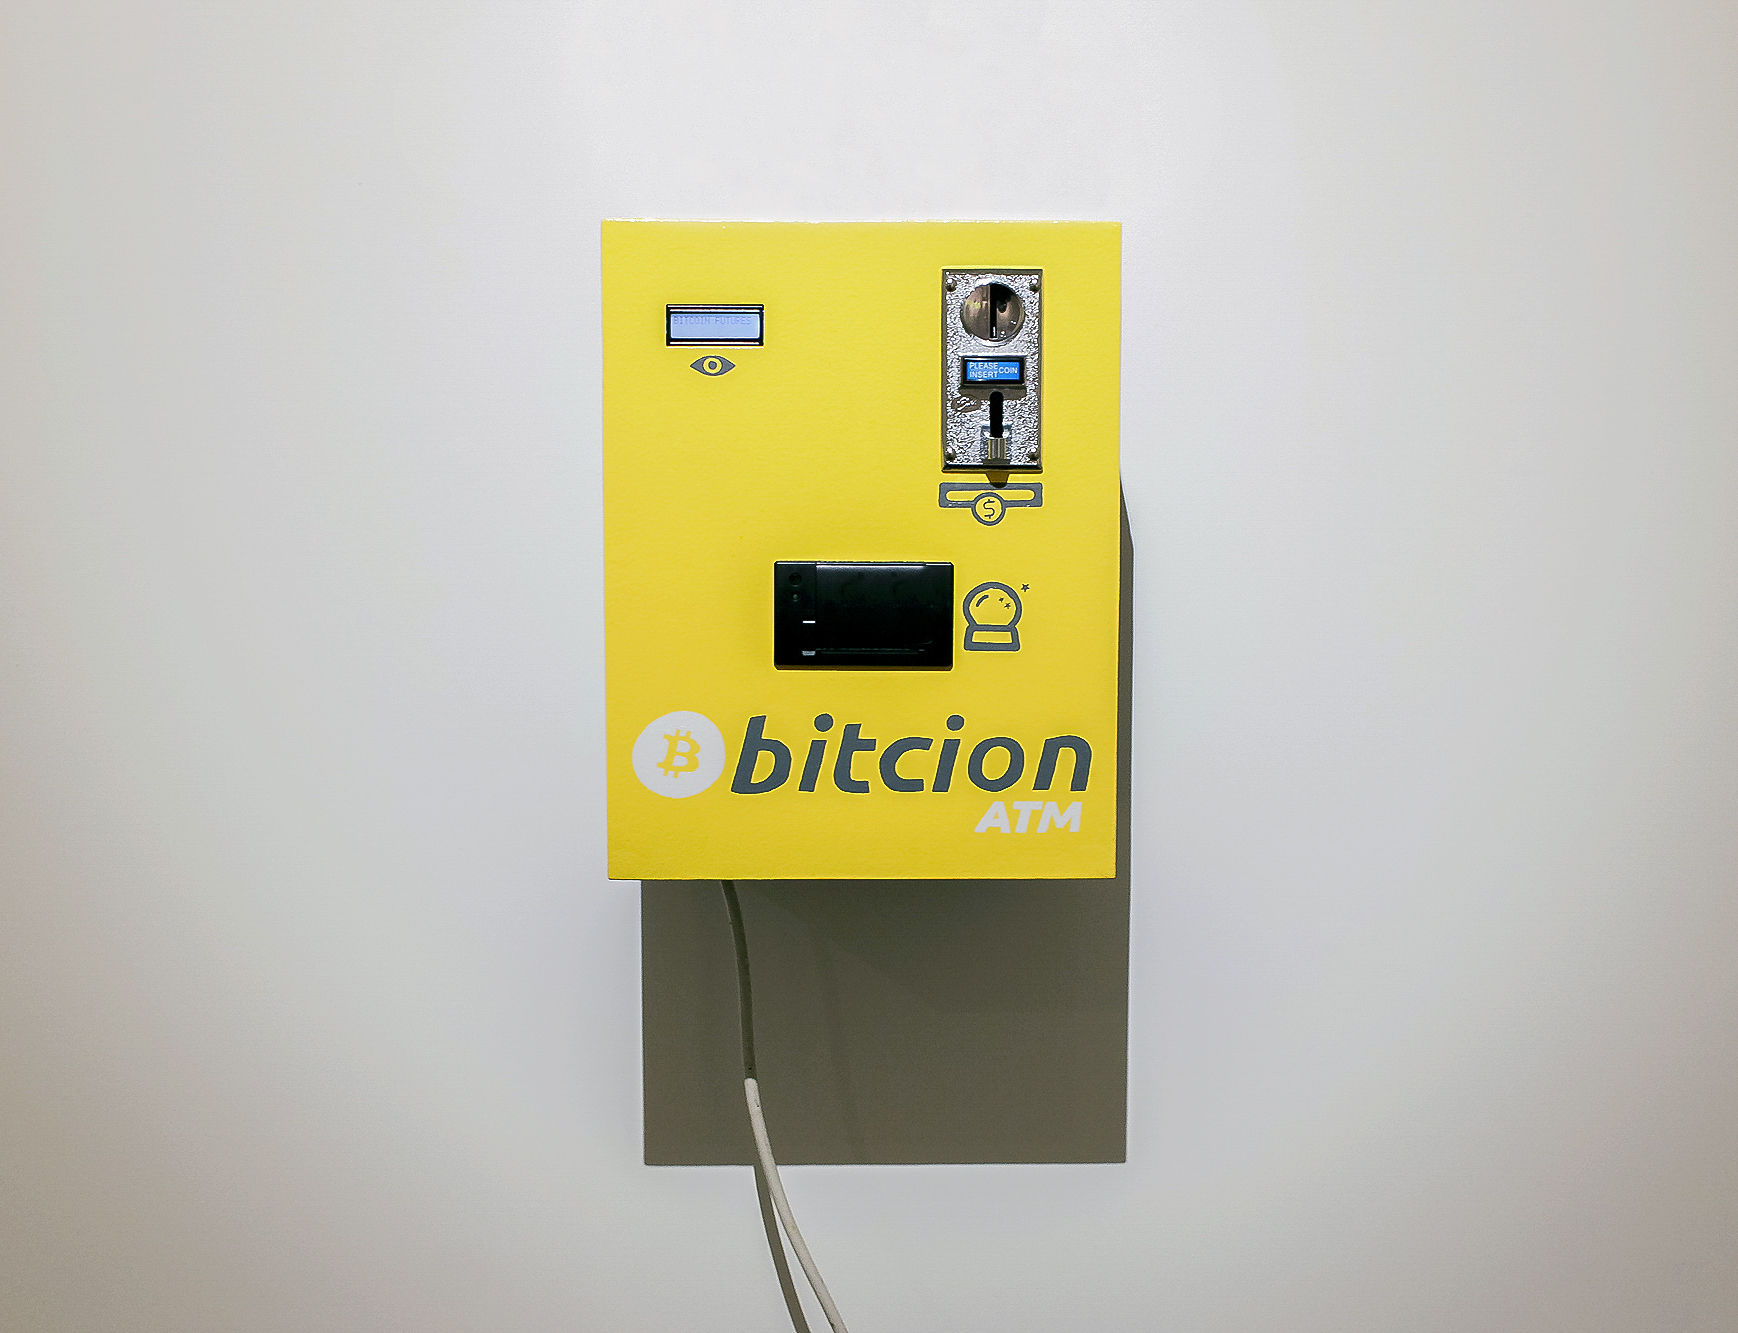 """Bitcoin Futures   Interactive sculpture comprised of wood,  electronics, LCD display, thermal printer, digital coin acceptor, paint; 16"""" x 12.5"""" x 10.5"""" Anxious to Make, 2018"""